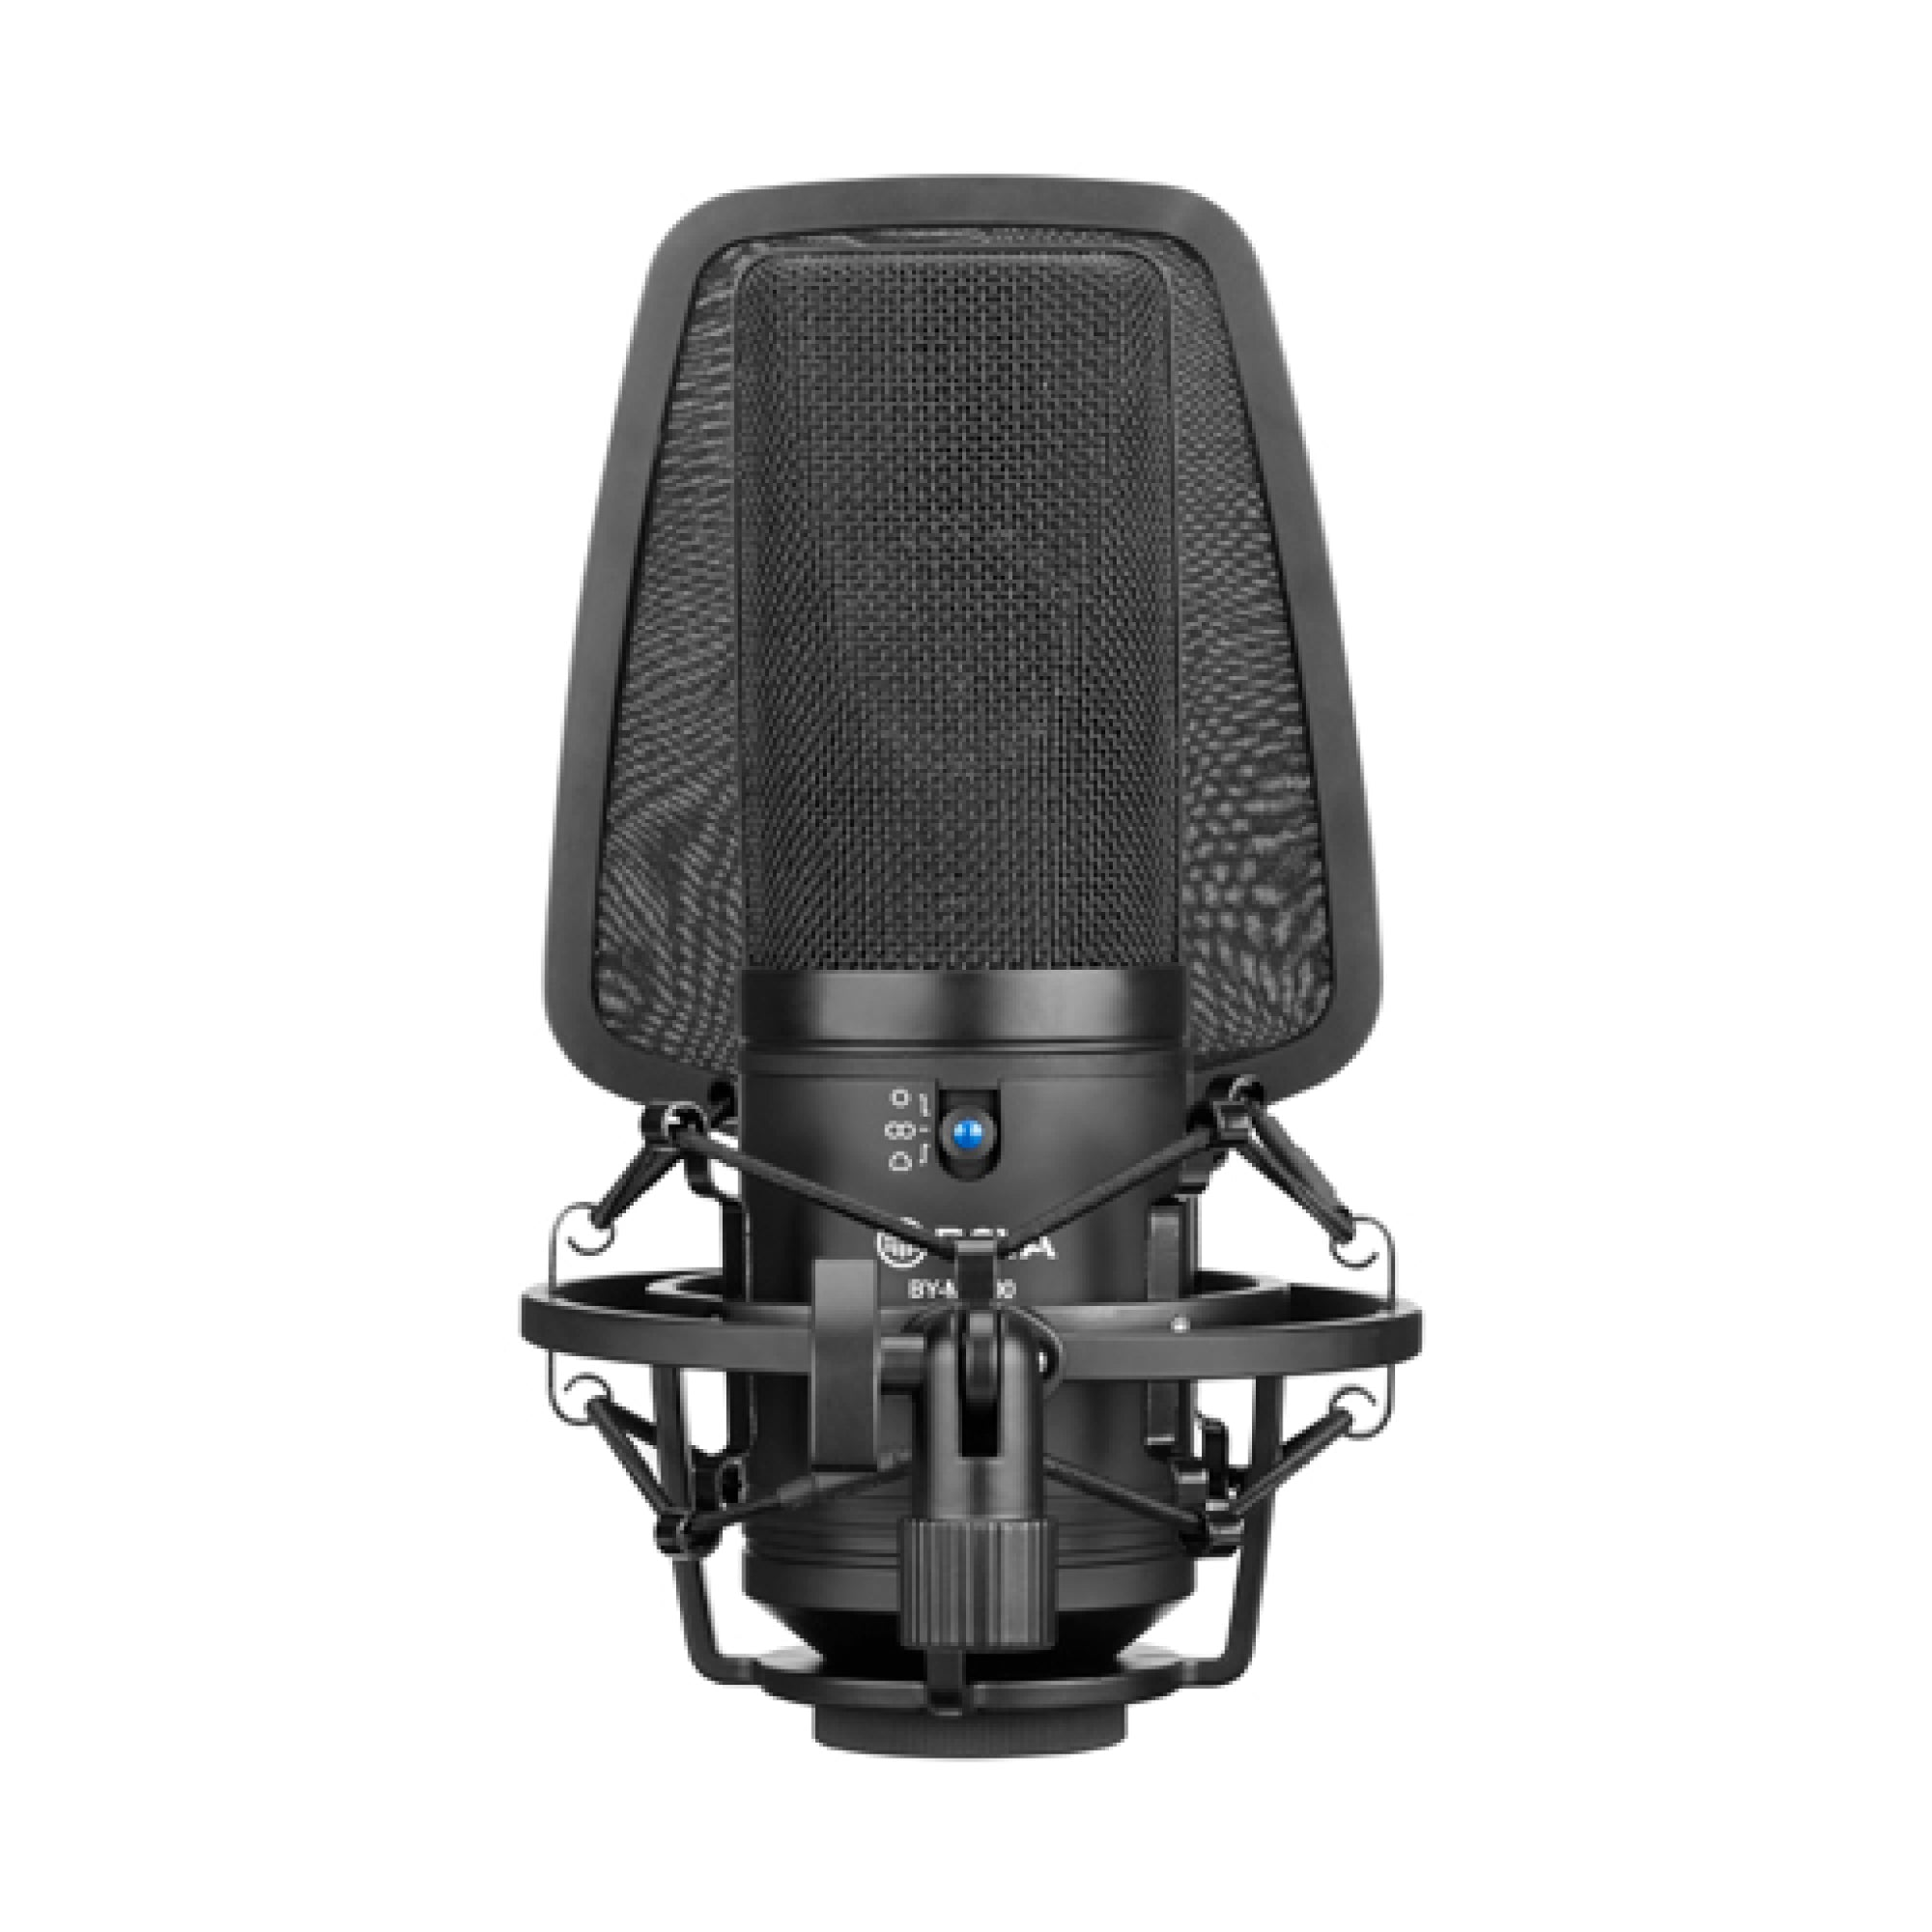 BOYA BY-M1000 Condenser Microphone - Gears For Ears